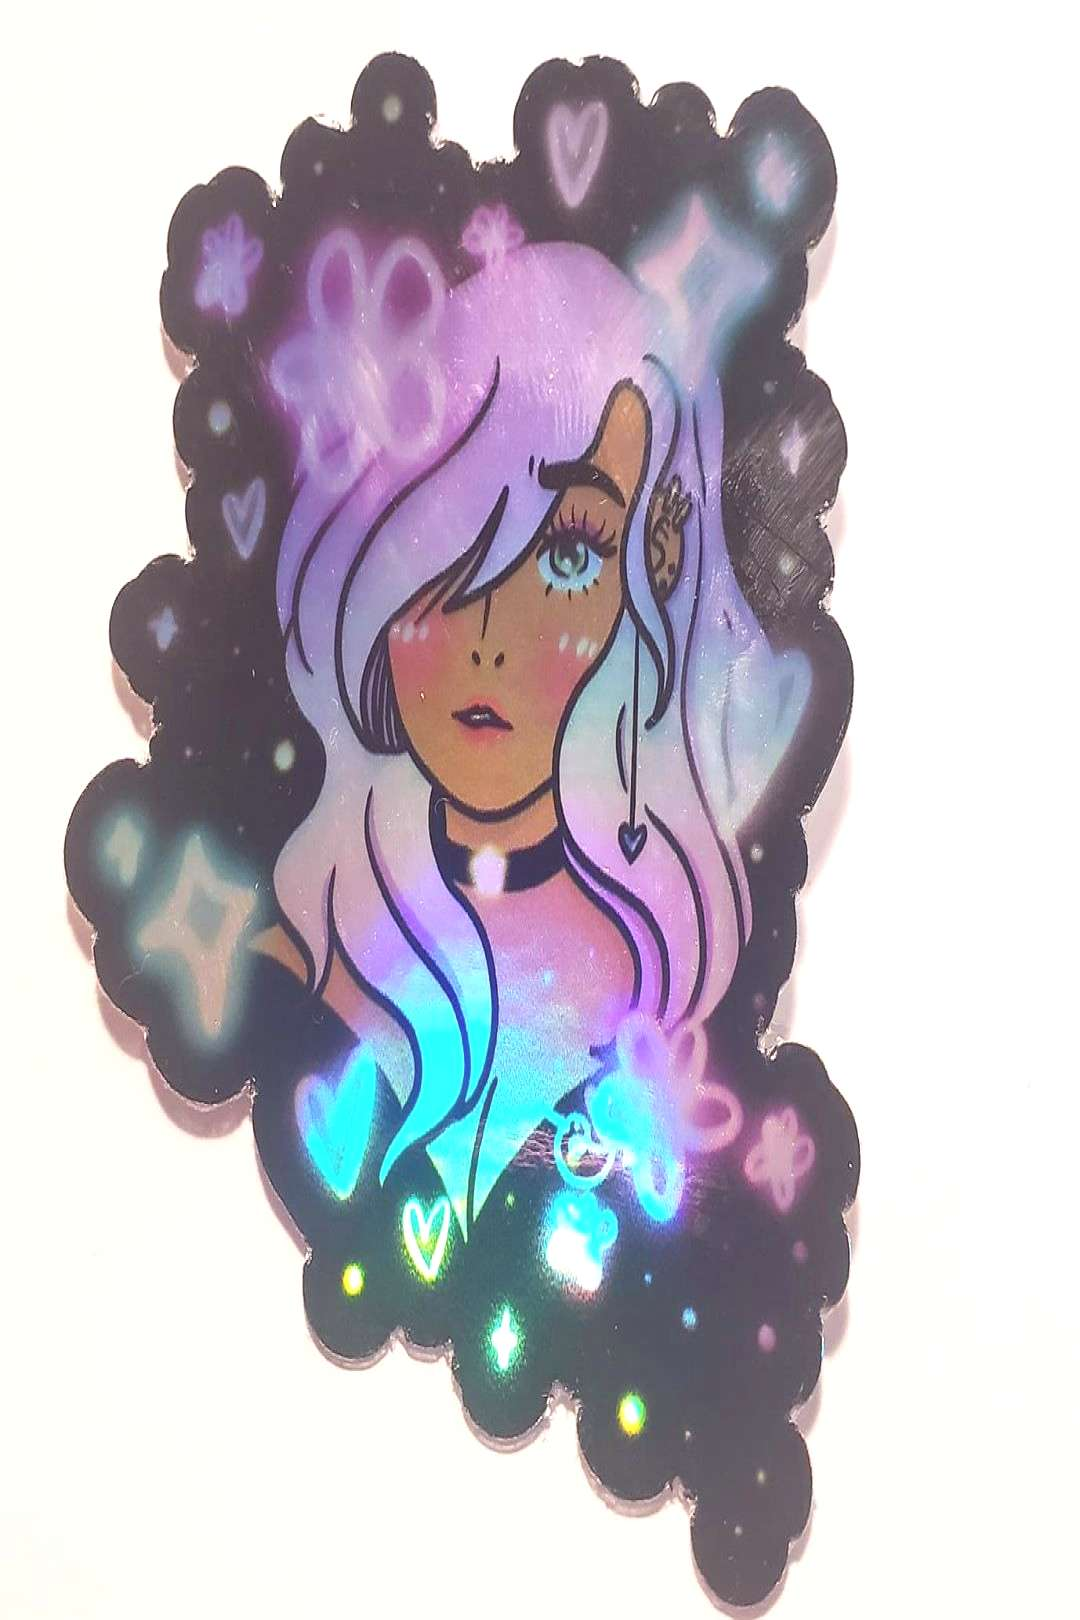 Sale! This will be $3+ $1 shipping! :) Made my first holographic